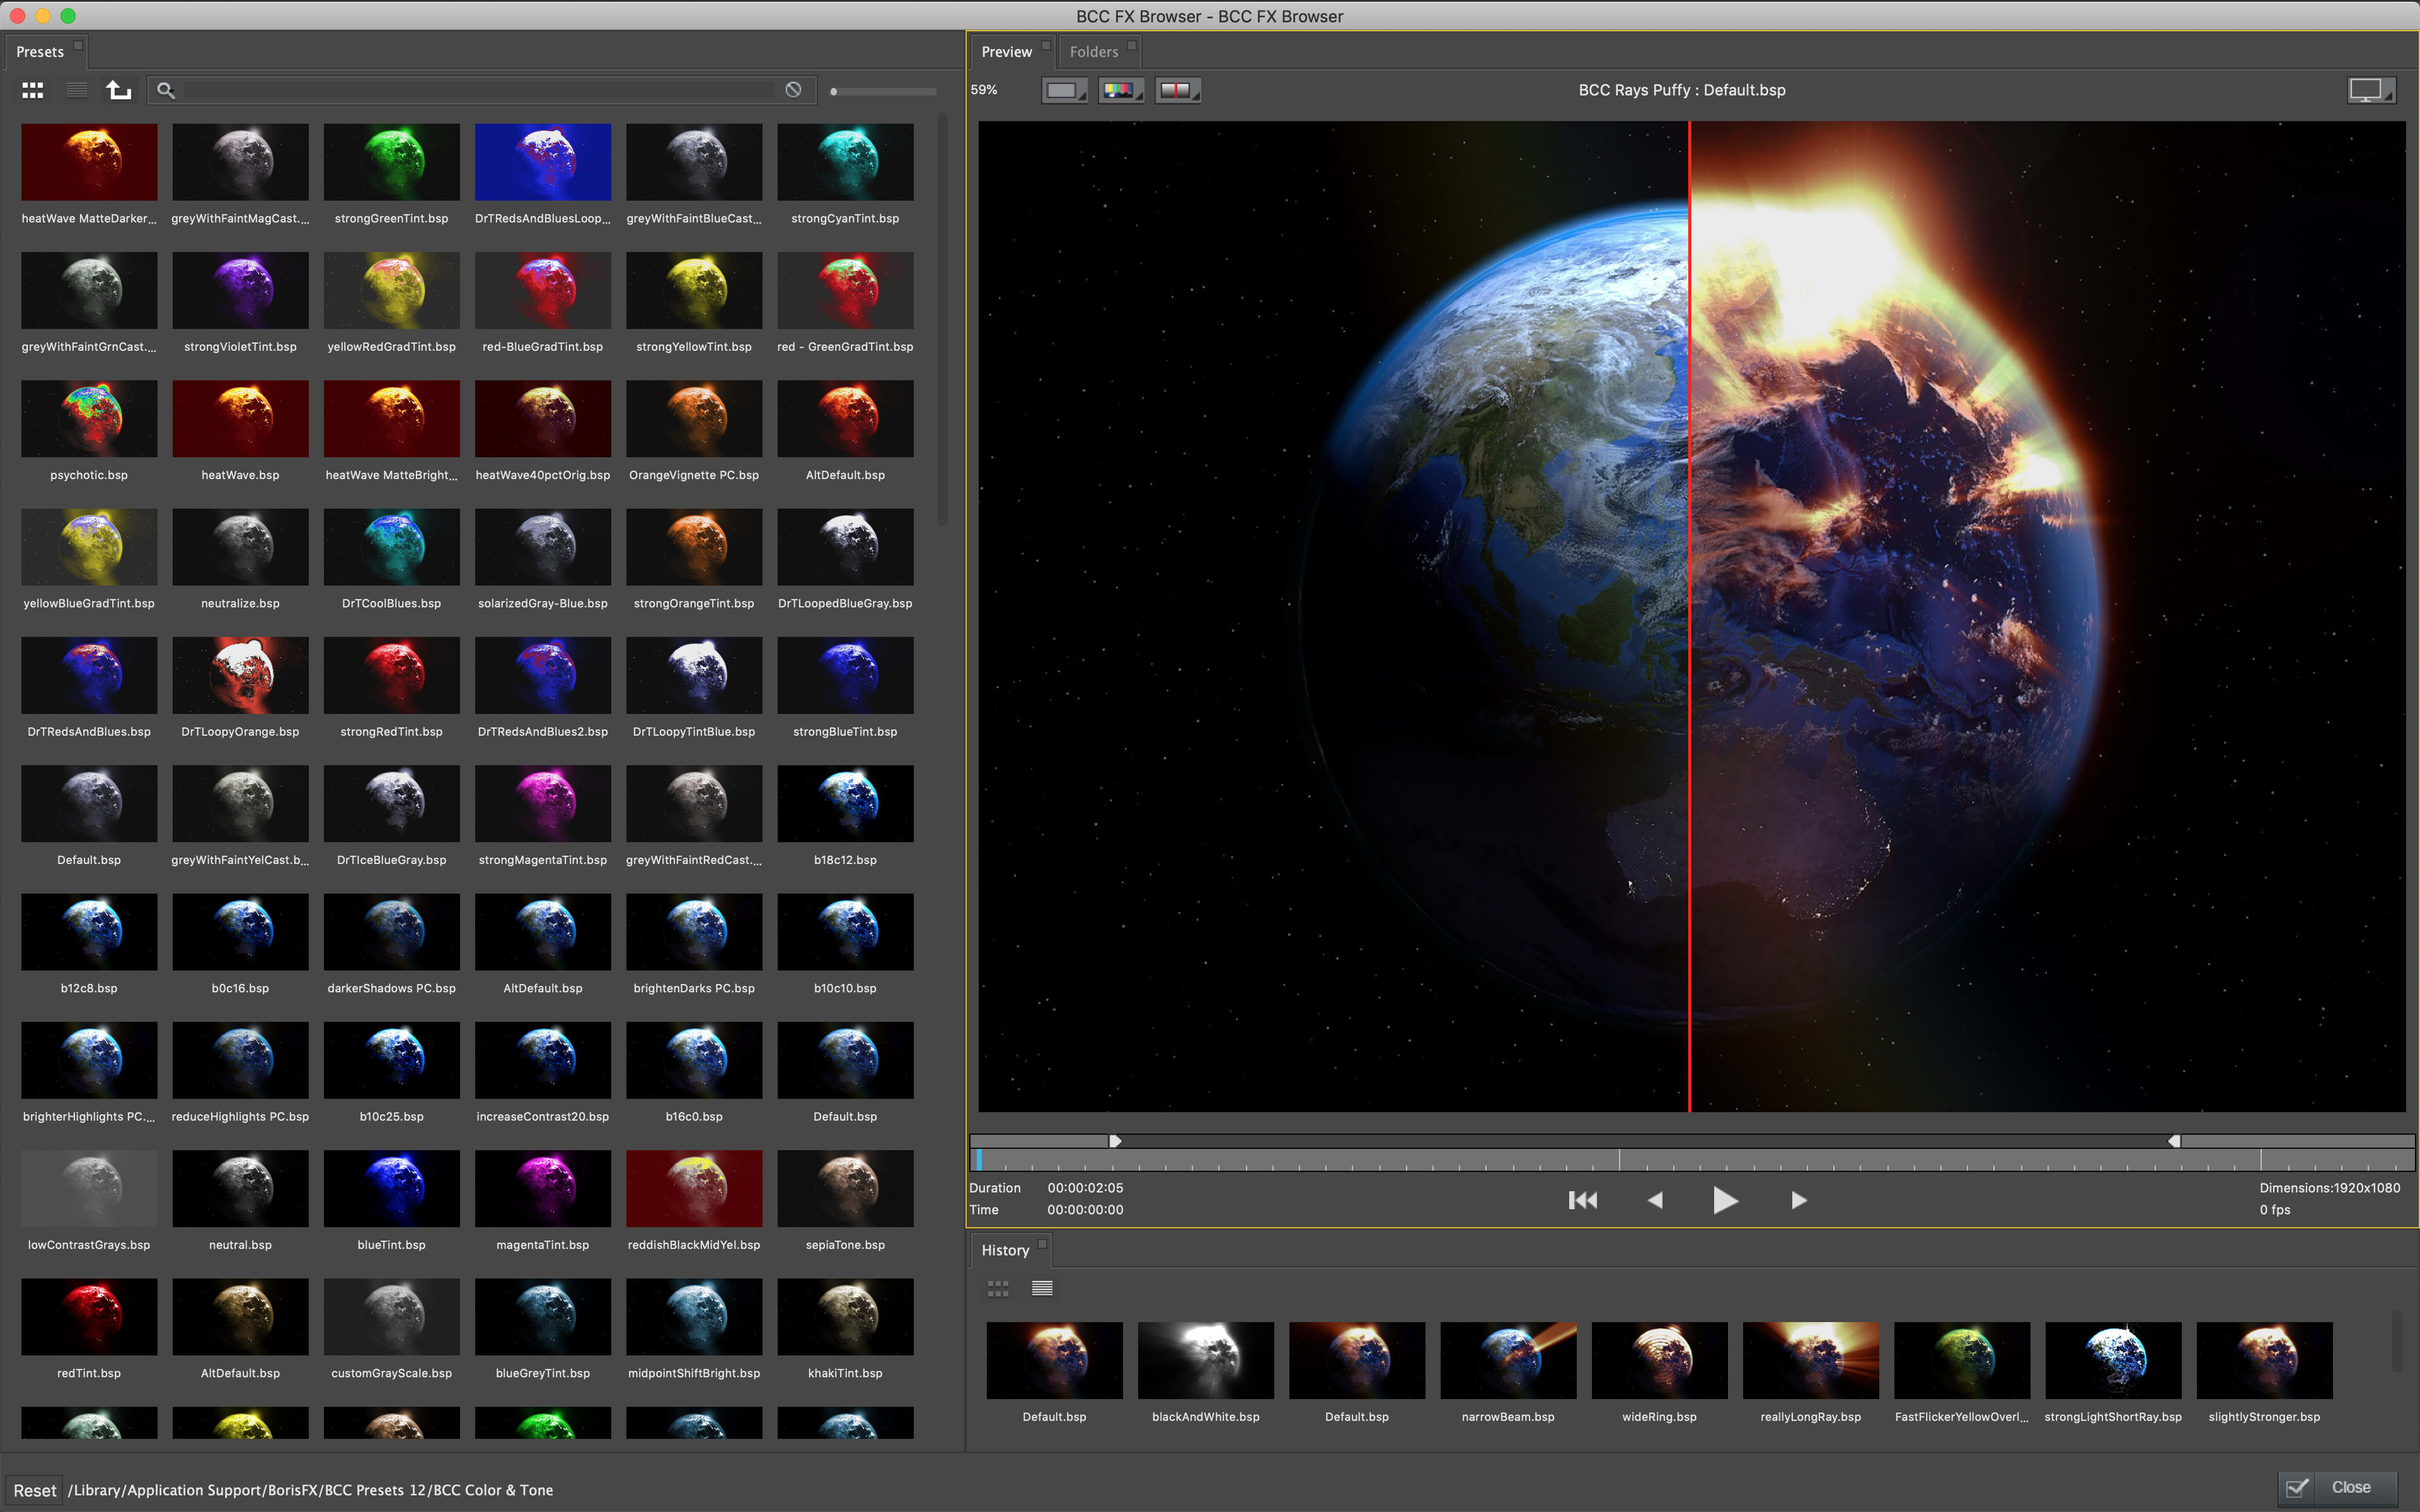 Boris continuum complete 8 for adobe ae prpro buy now